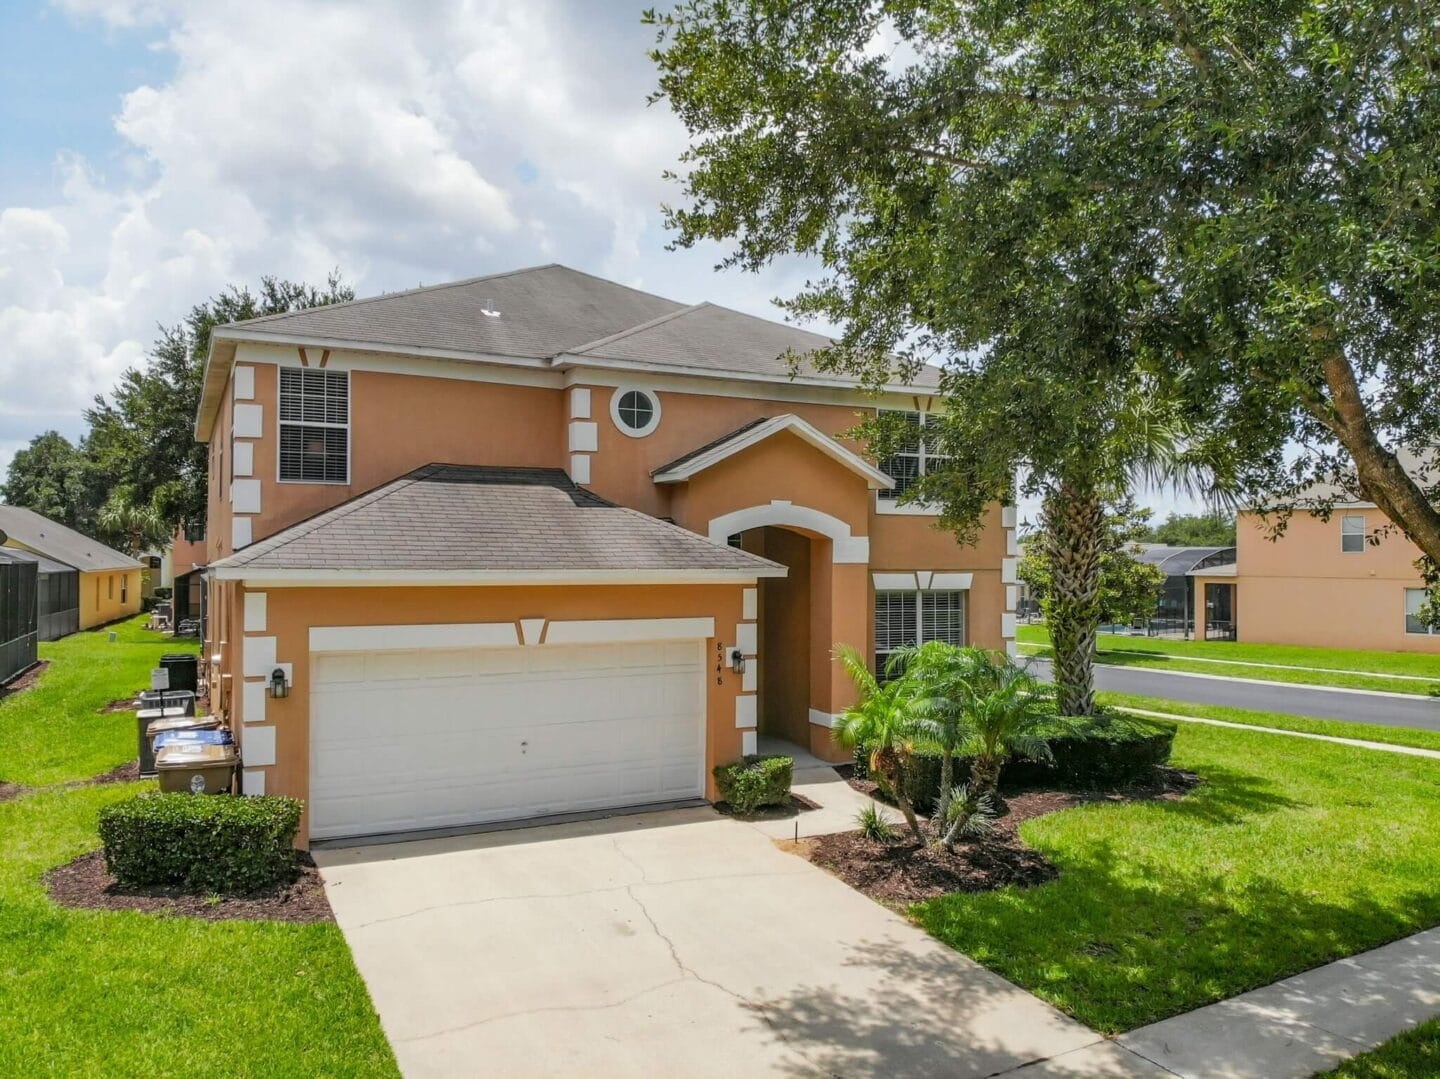 Rental House Near Disney World: Our Disney Vacation Home